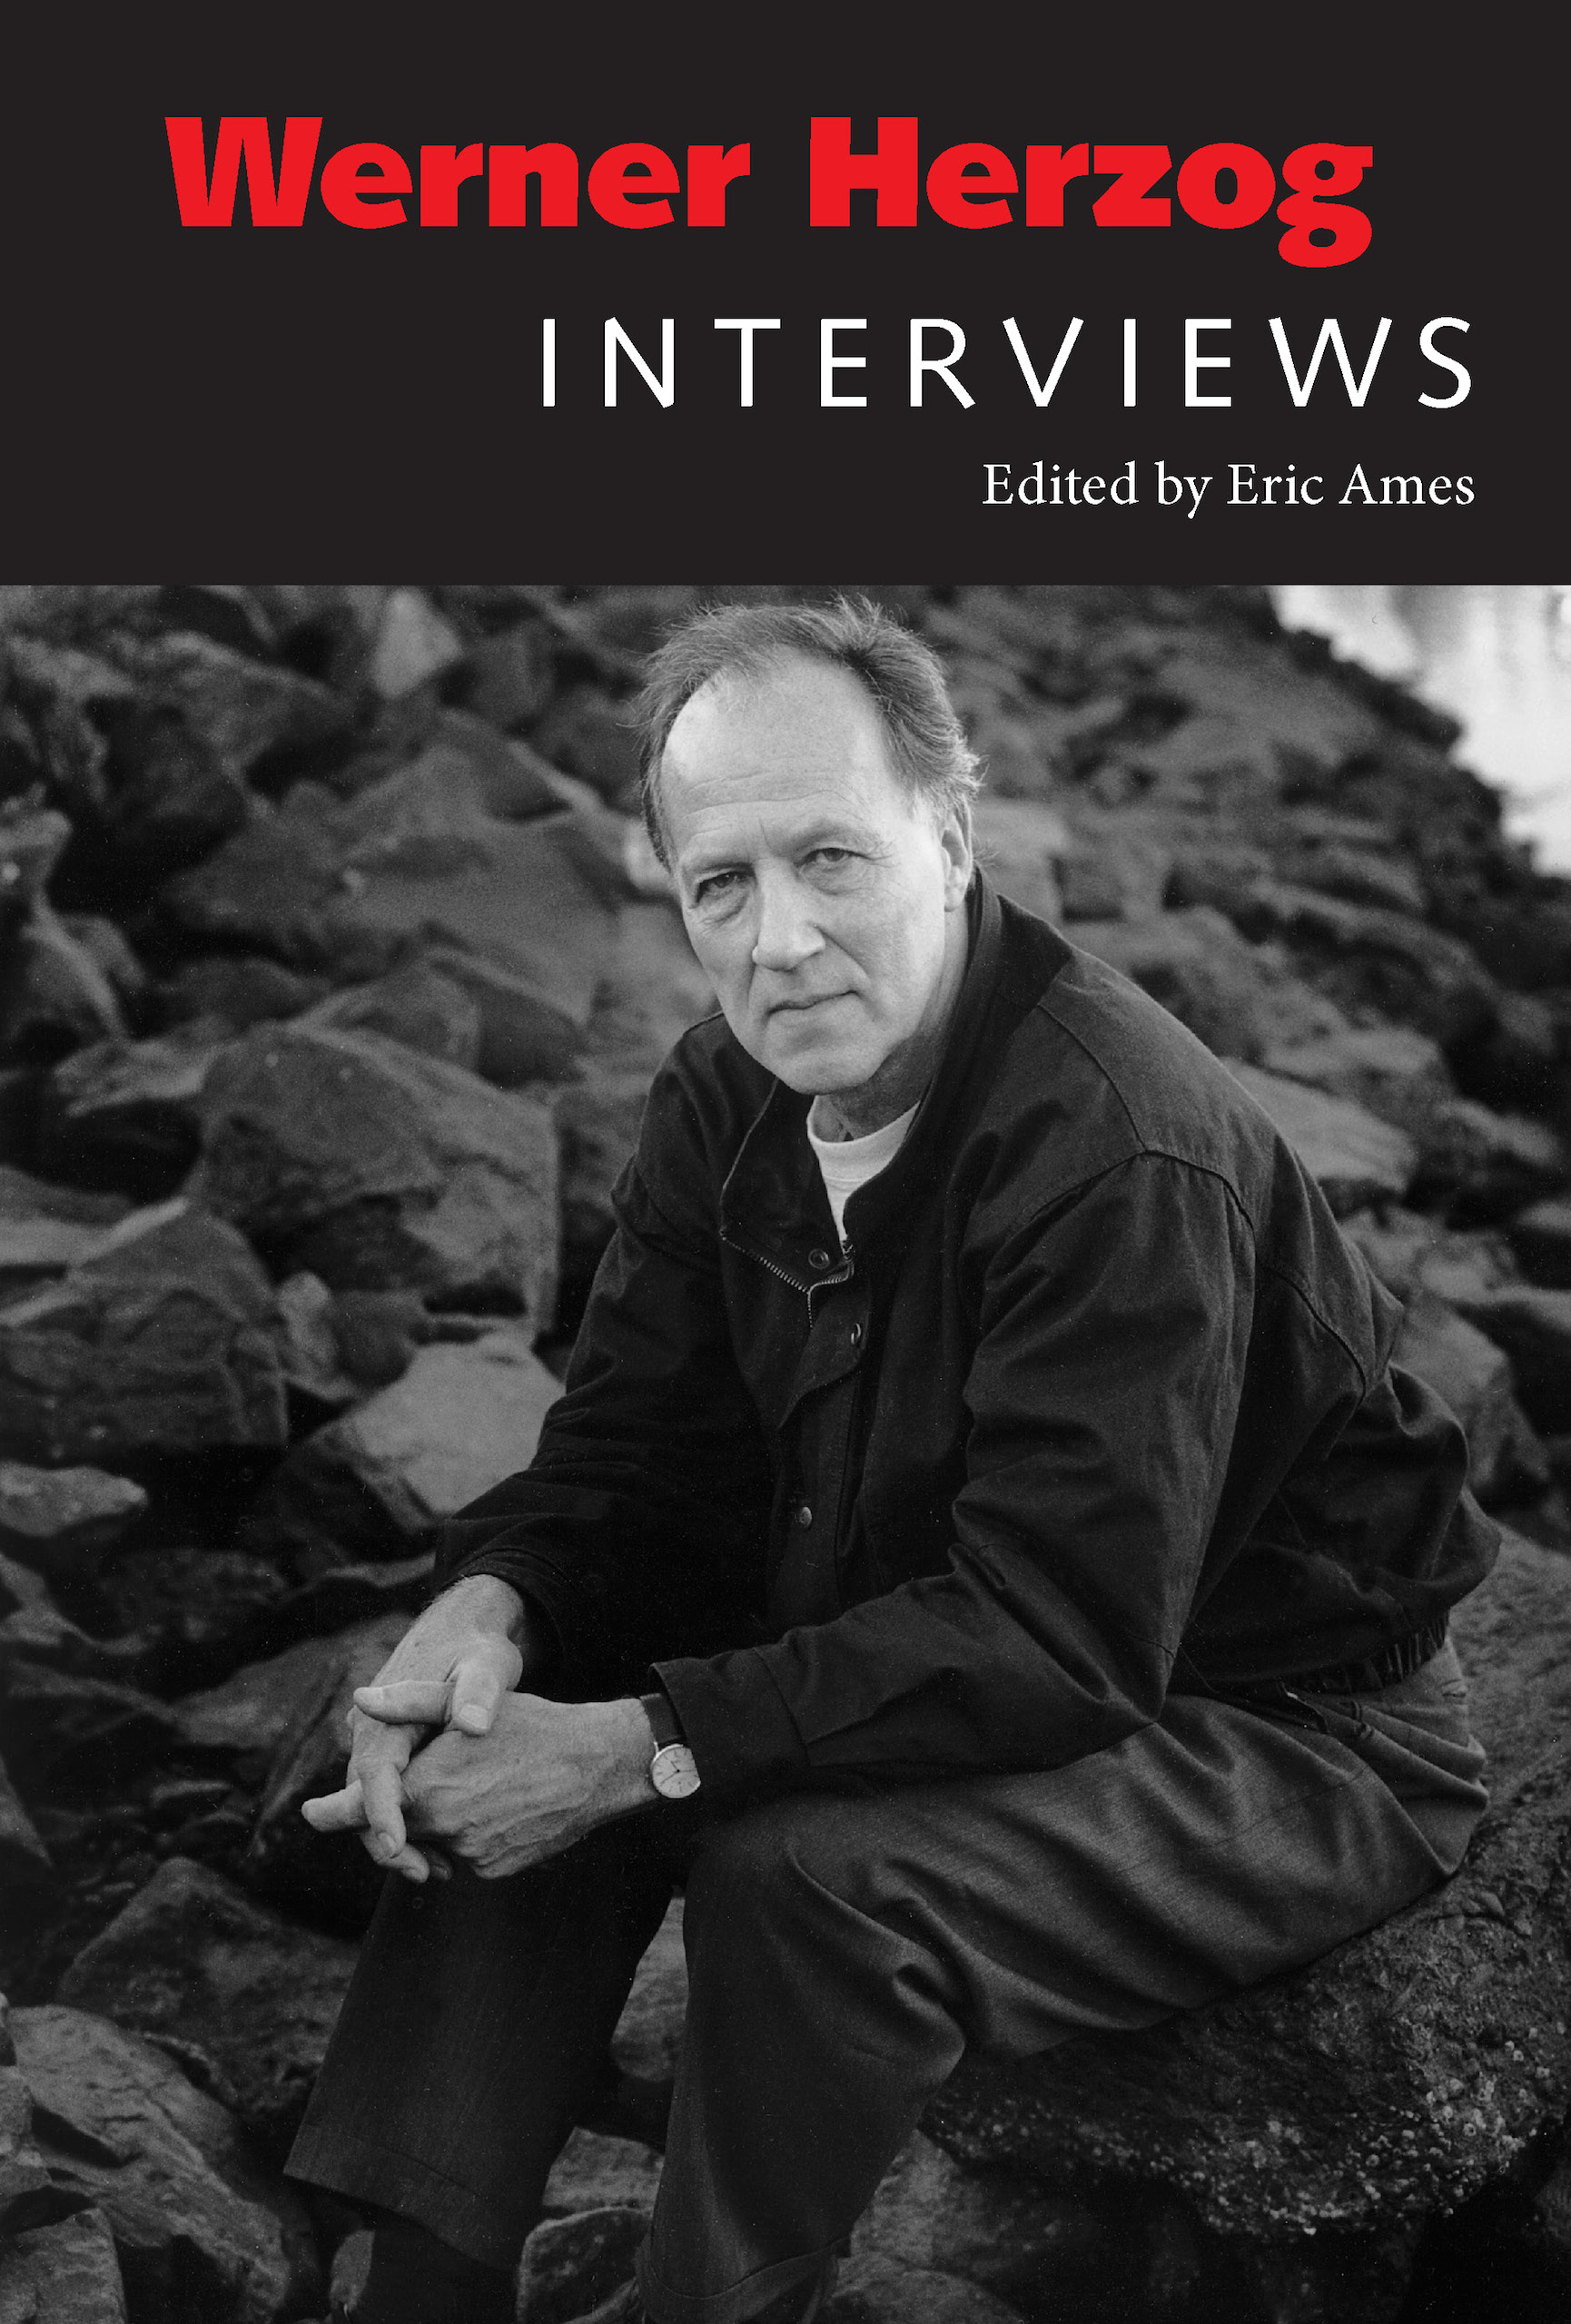 """Werner Herzog: Interviews,"" edited by the UW's Eric Ames, was published by University Press of Mississippi."